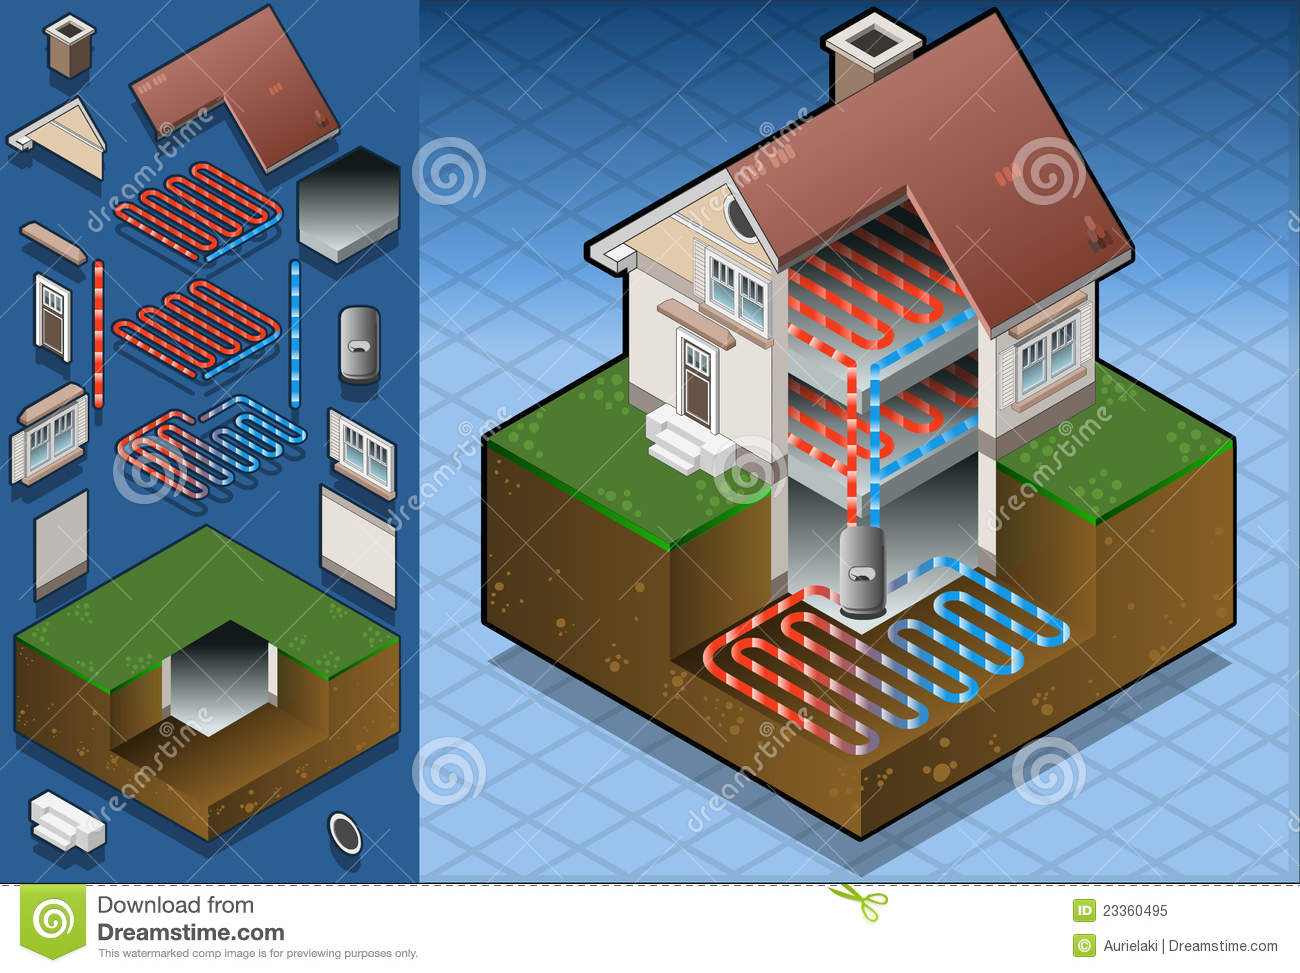 geothermal heat pump underfloorheating diagram royalty free stock  : geothermal heating diagram - findchart.co